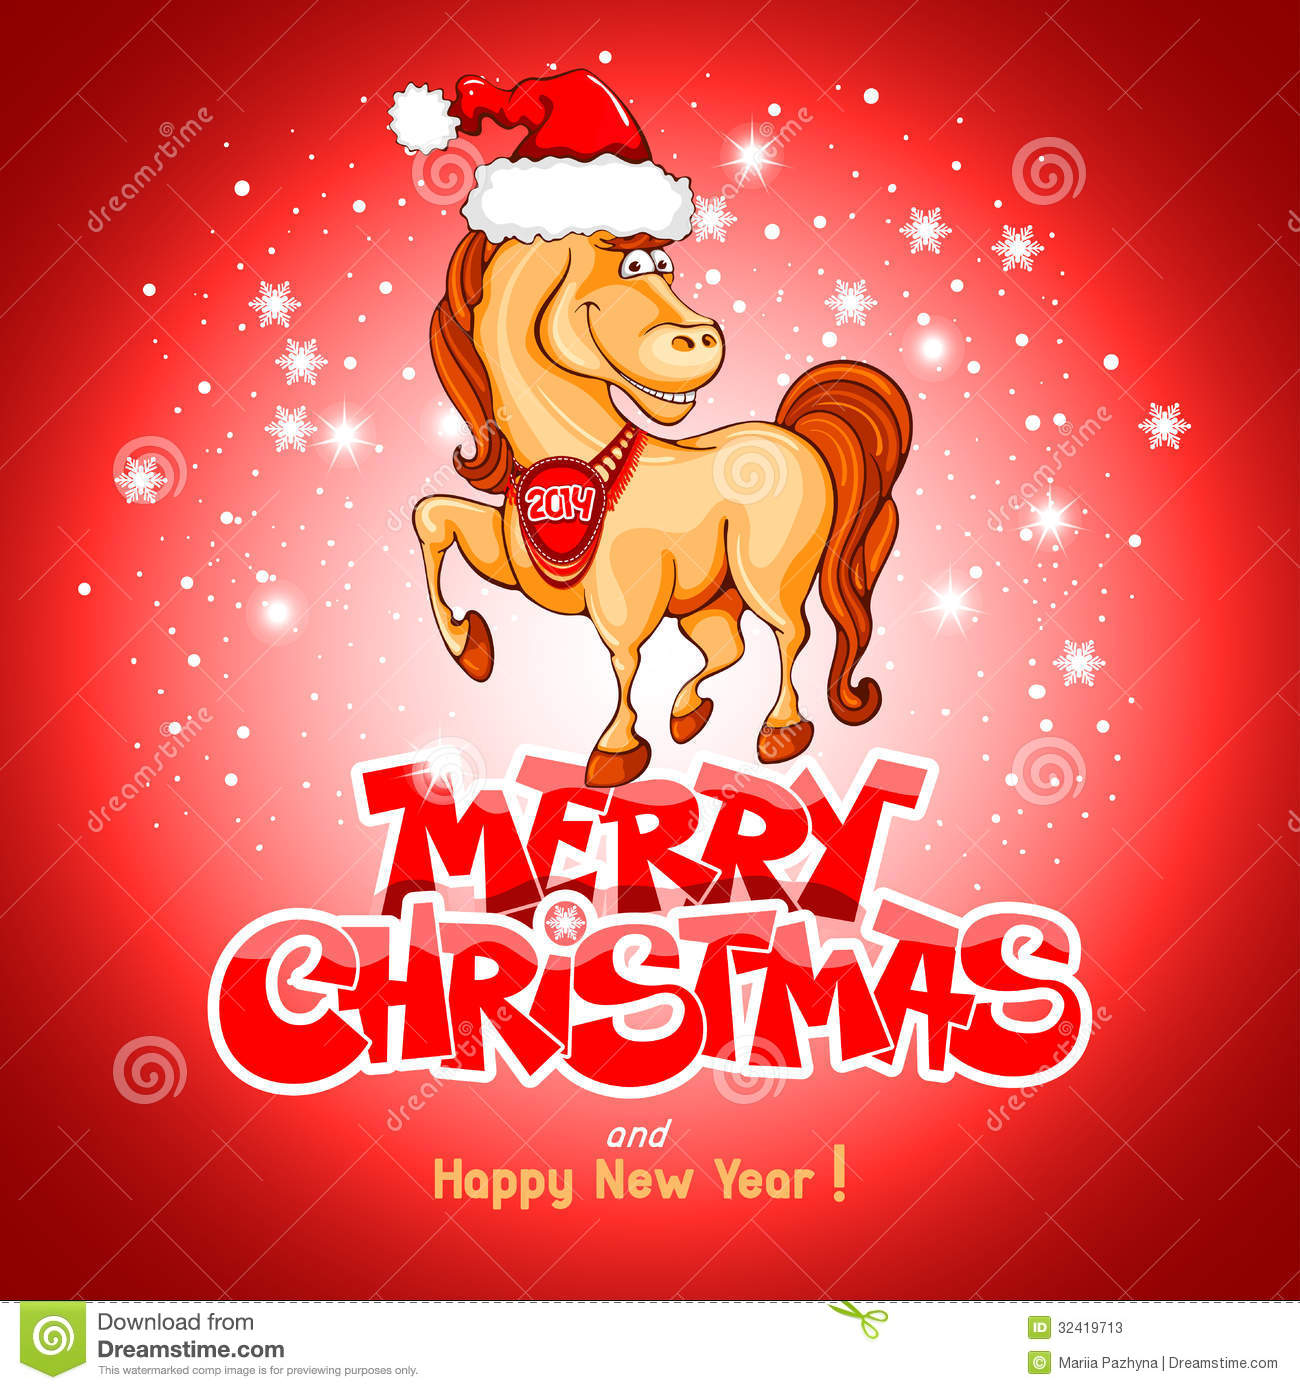 Merry Christmas Card Funny Horse Symbol Stock Illustrations.